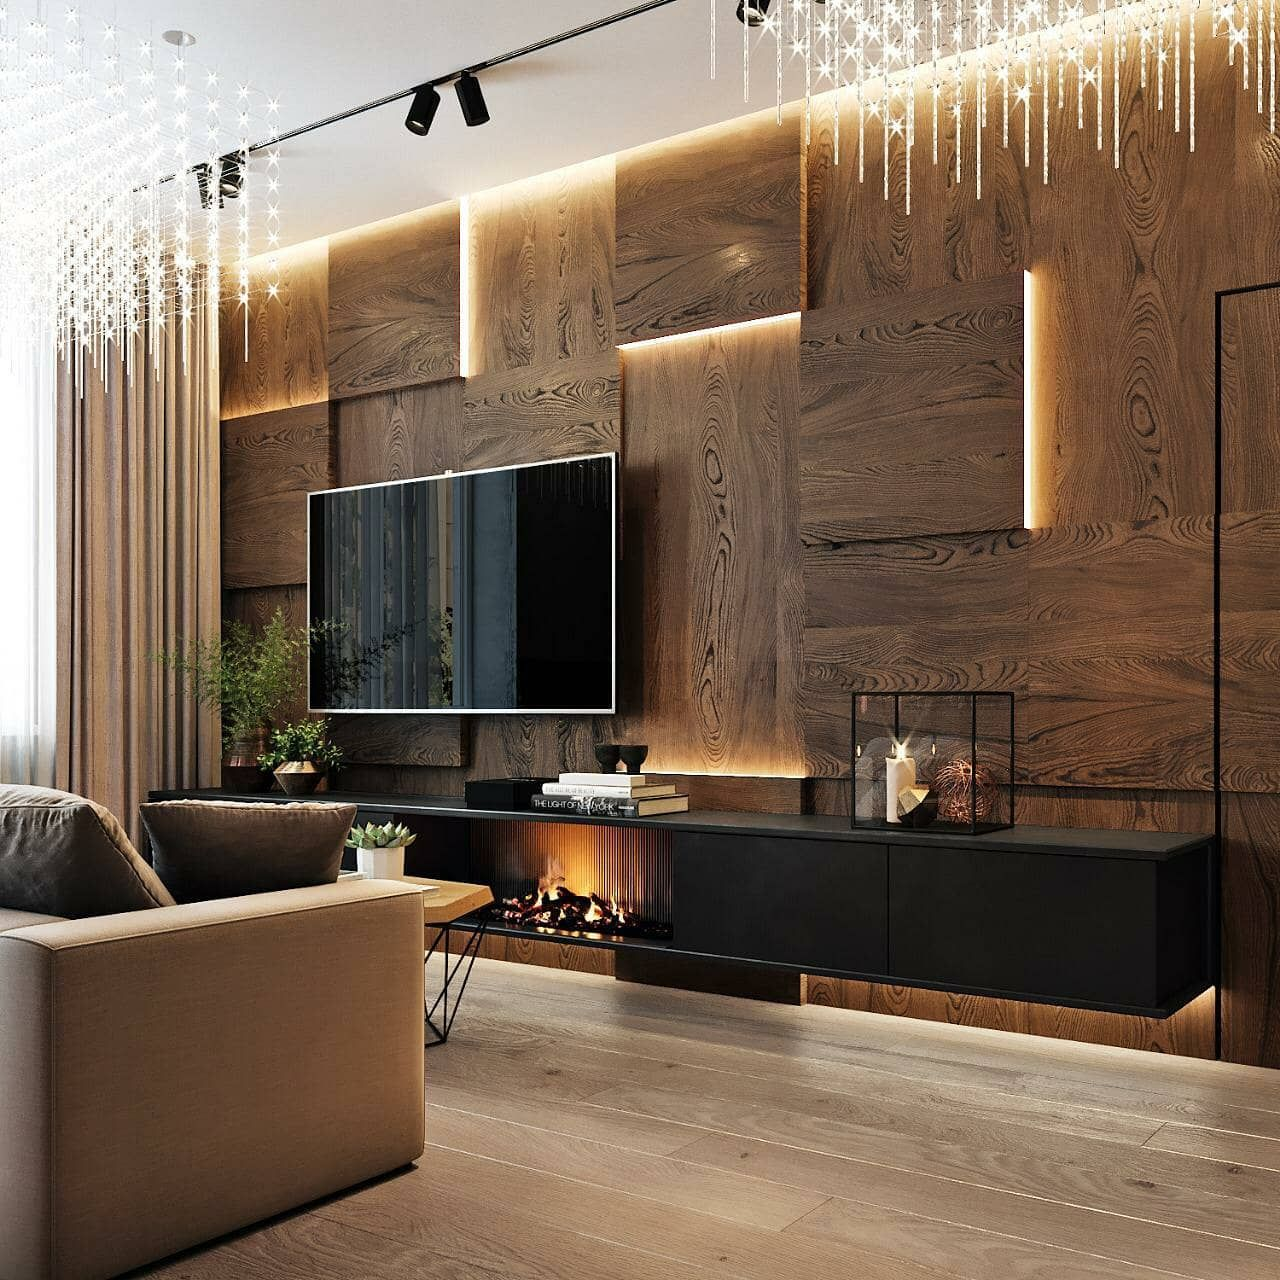 pin by abeeraljallab on الصاله in 2020 luxury living on incredible tv wall design ideas for living room decor layouts of tv models id=59446